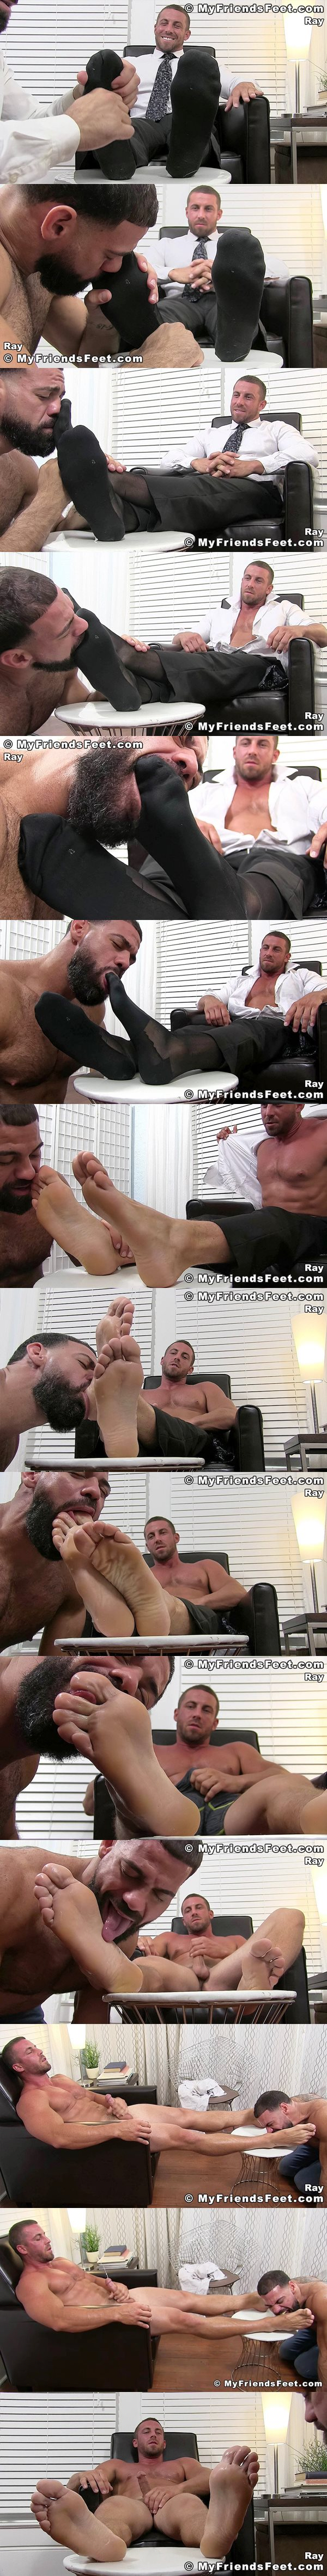 Myfriendsfeet - Businessman Ray Worshiped 02